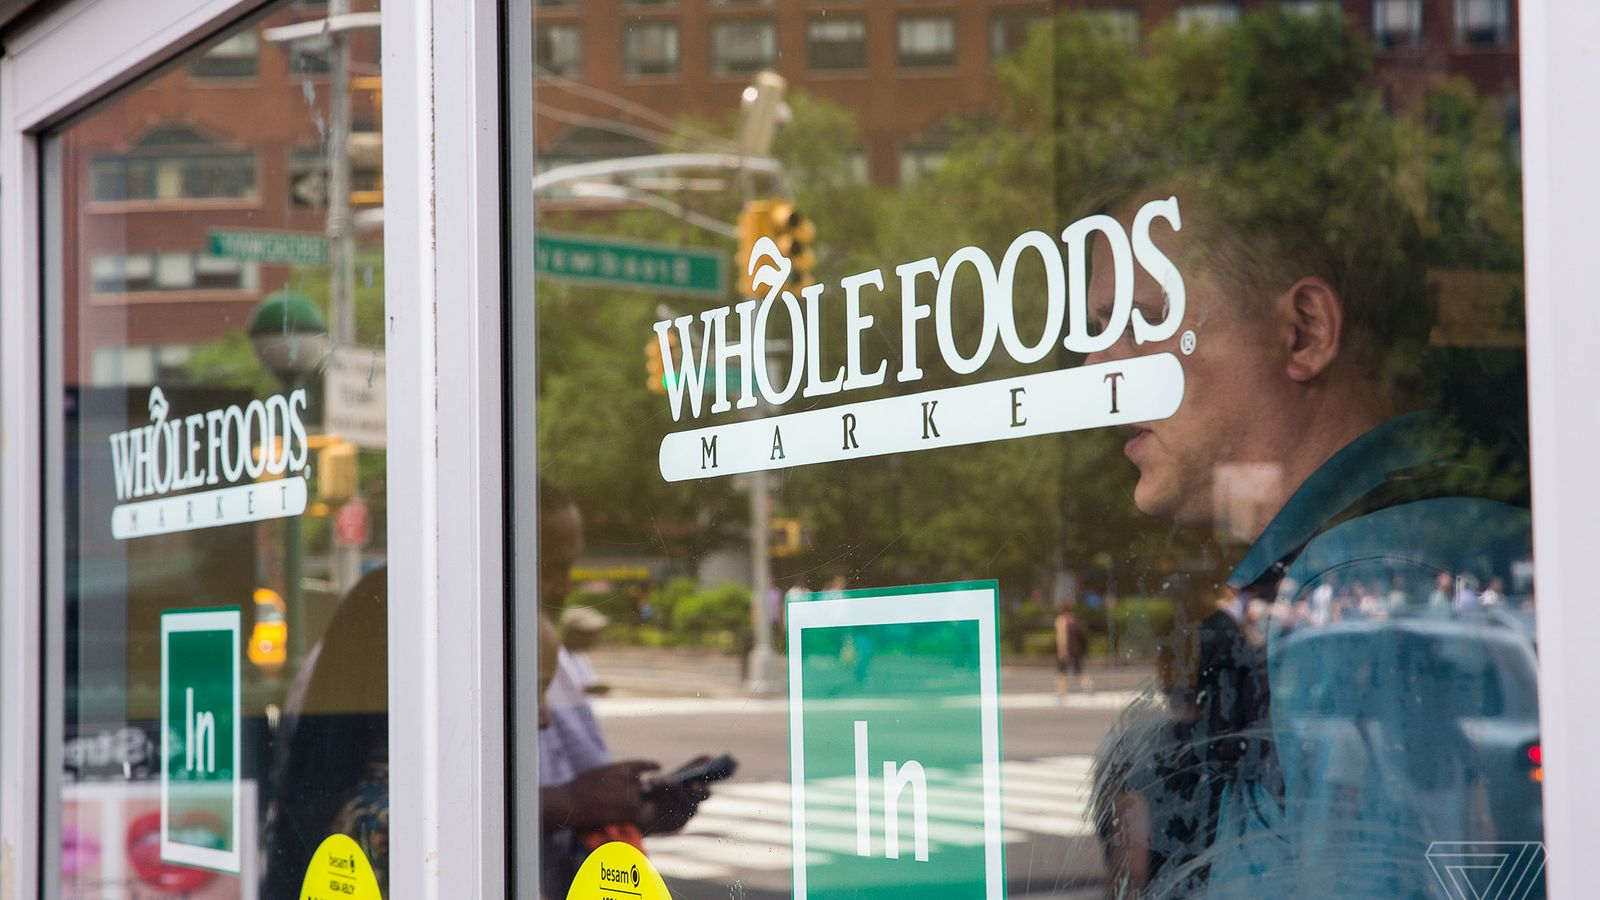 Amazon will cut prices on avocados at Whole Foods when it completes acquisition on Monday